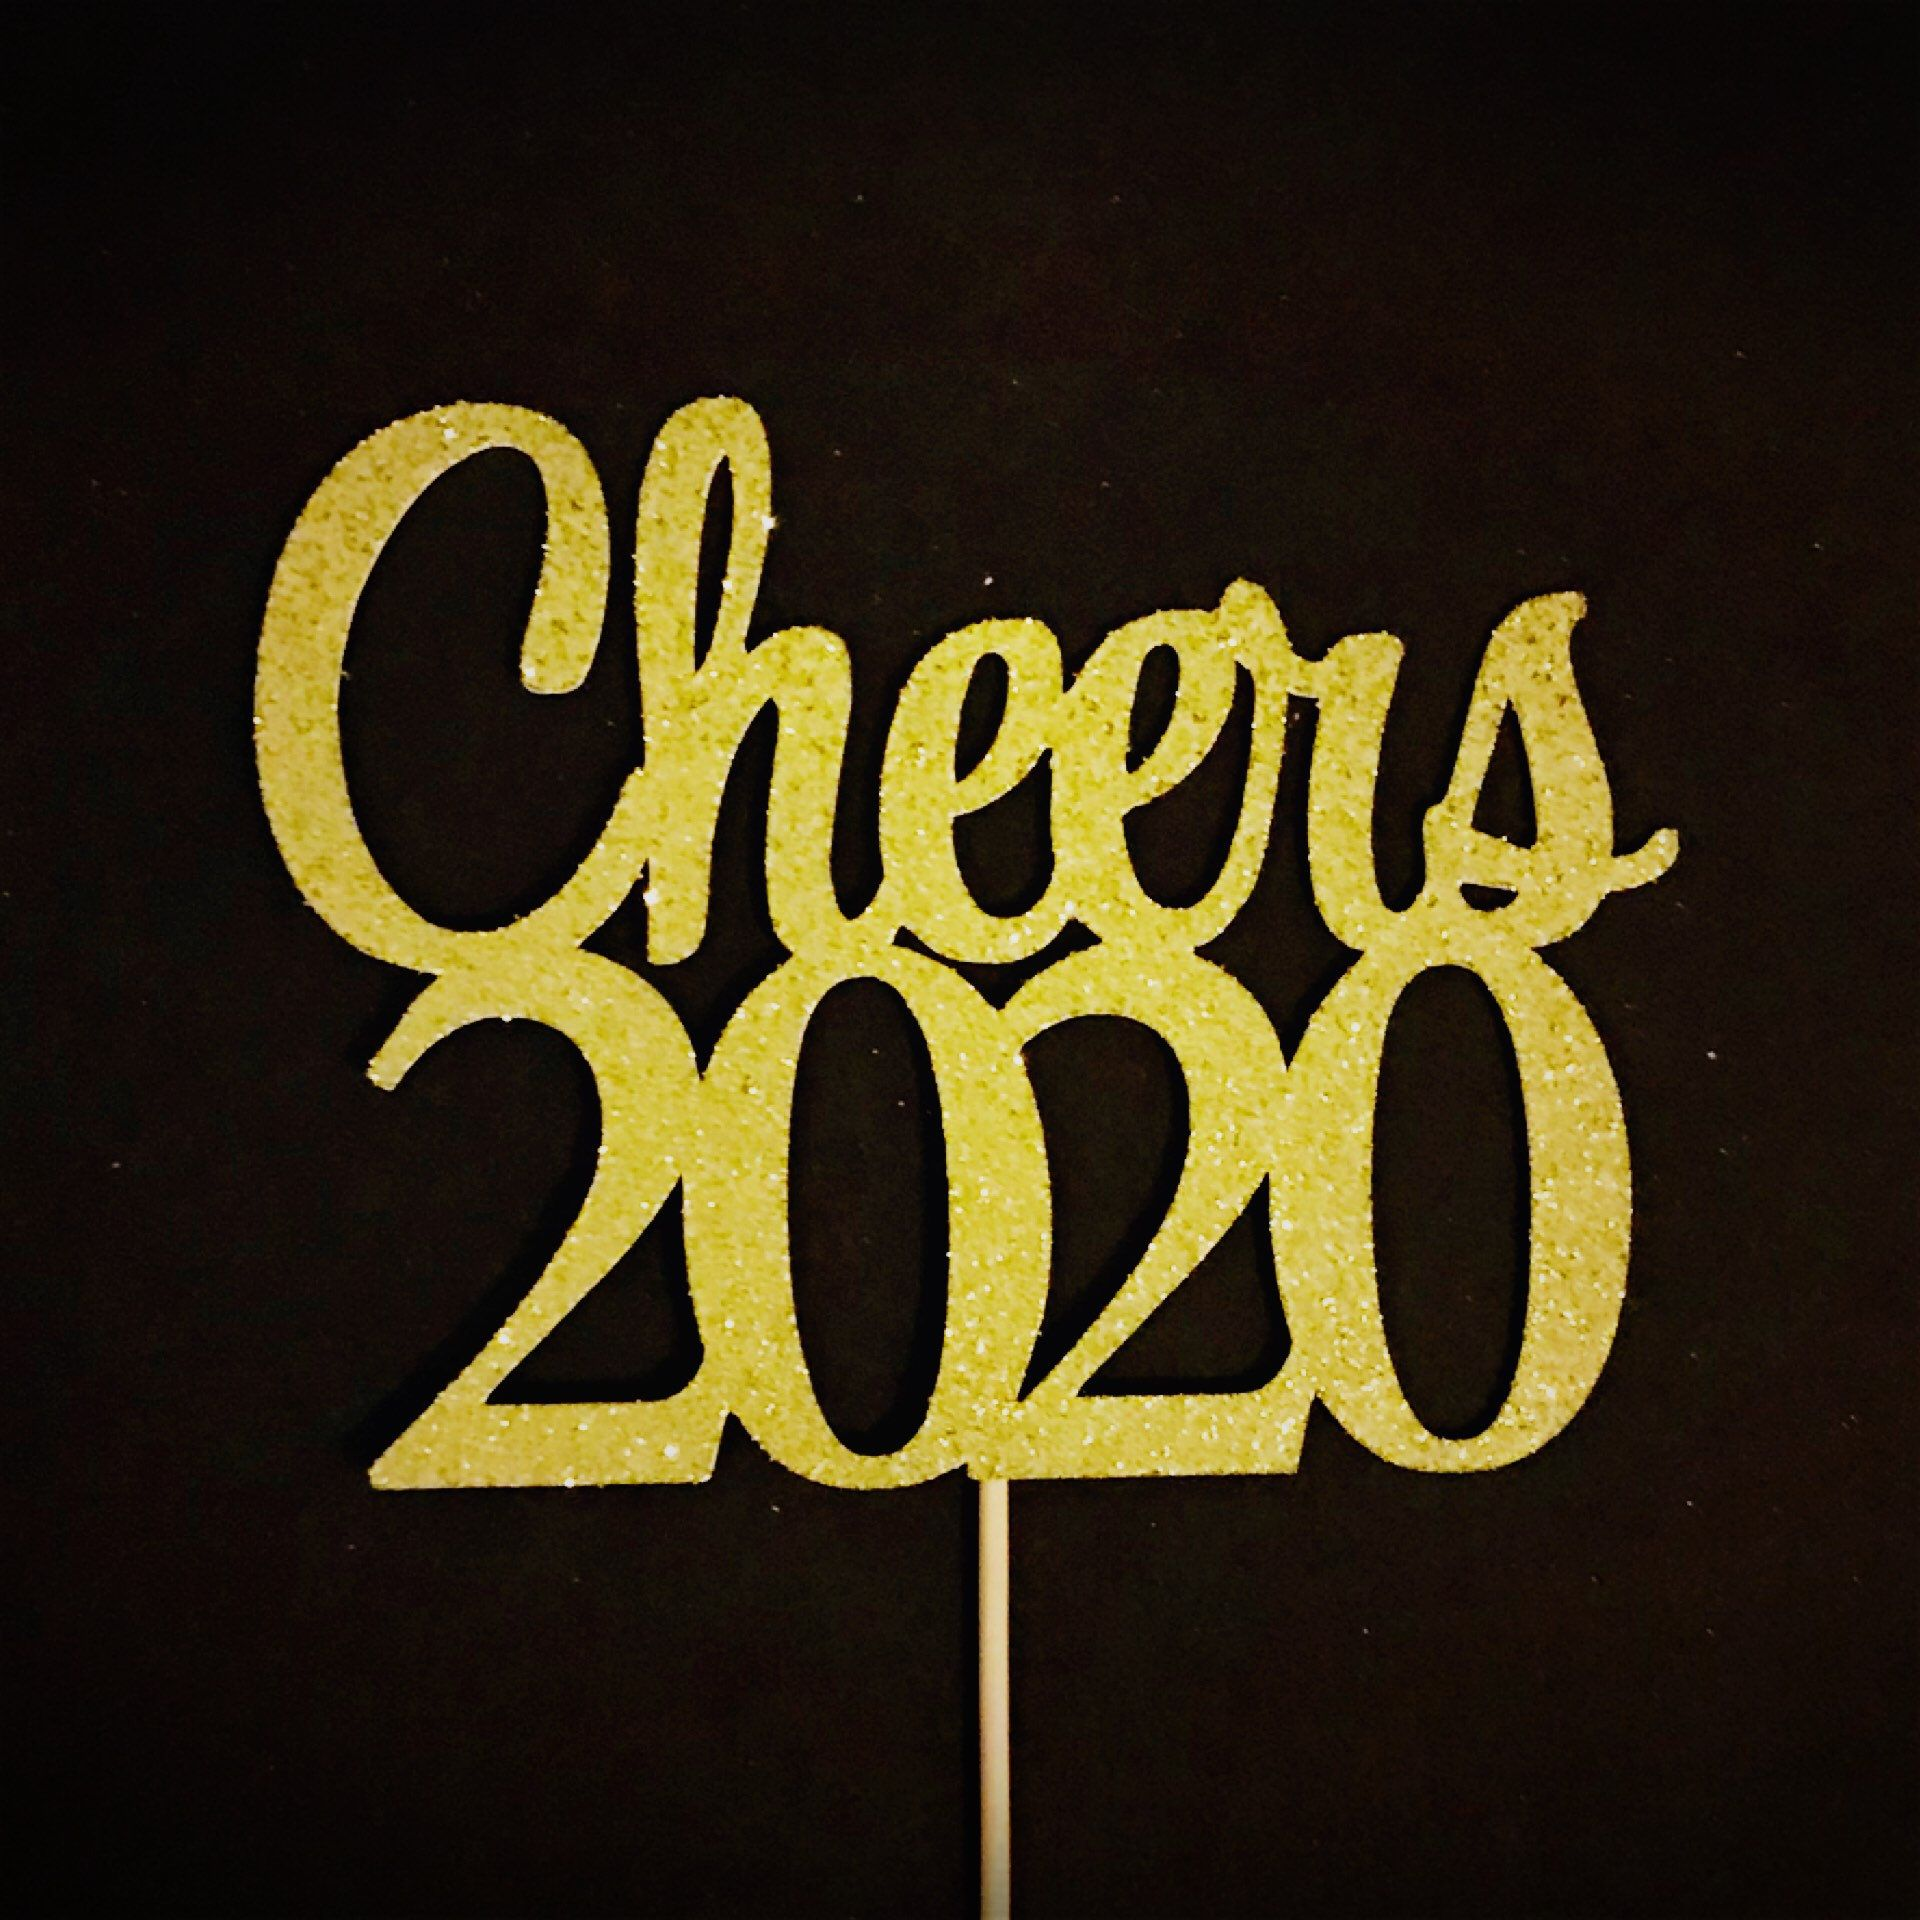 Cheers 2020 Cake Topper, New Year Party Cake Topper, New